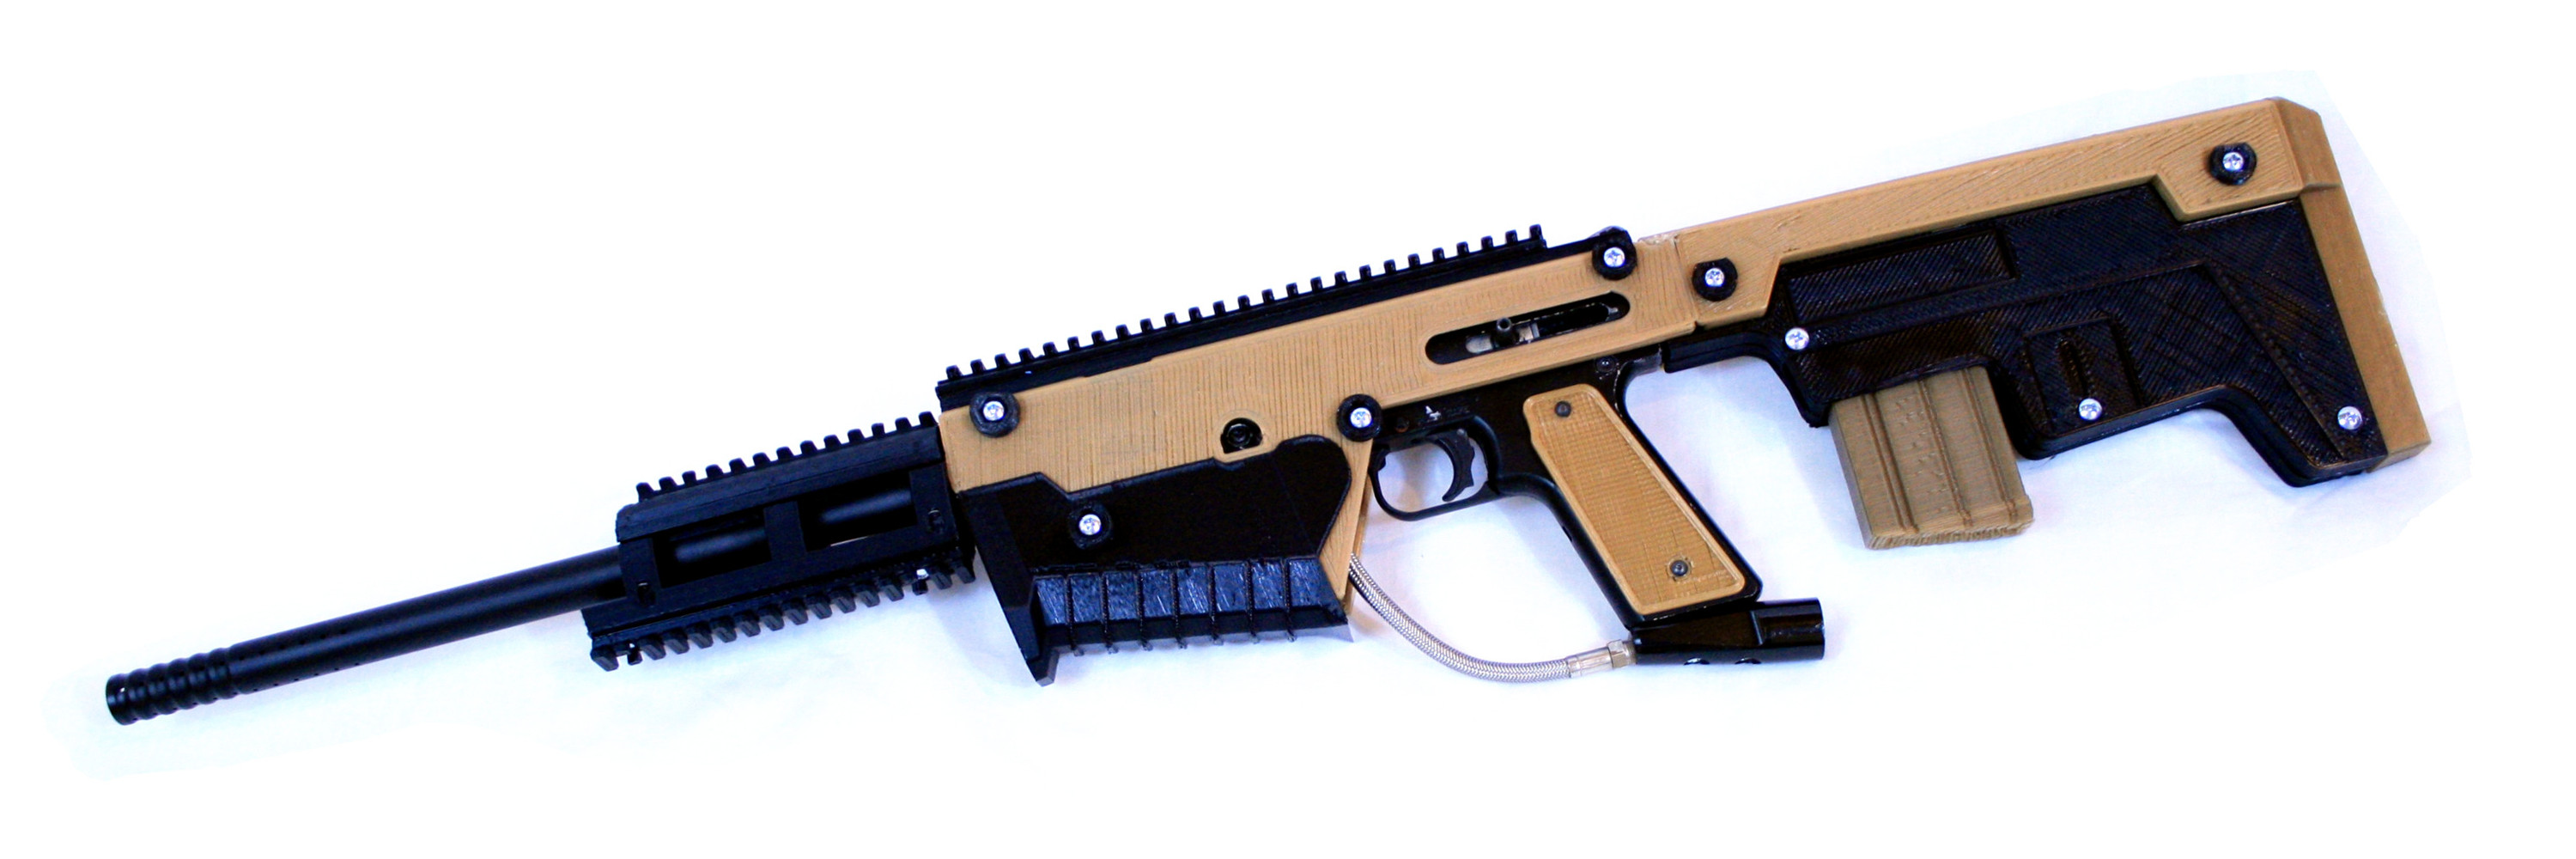 TAR-68 Bullpup Rifle - 3D printed paintball marker